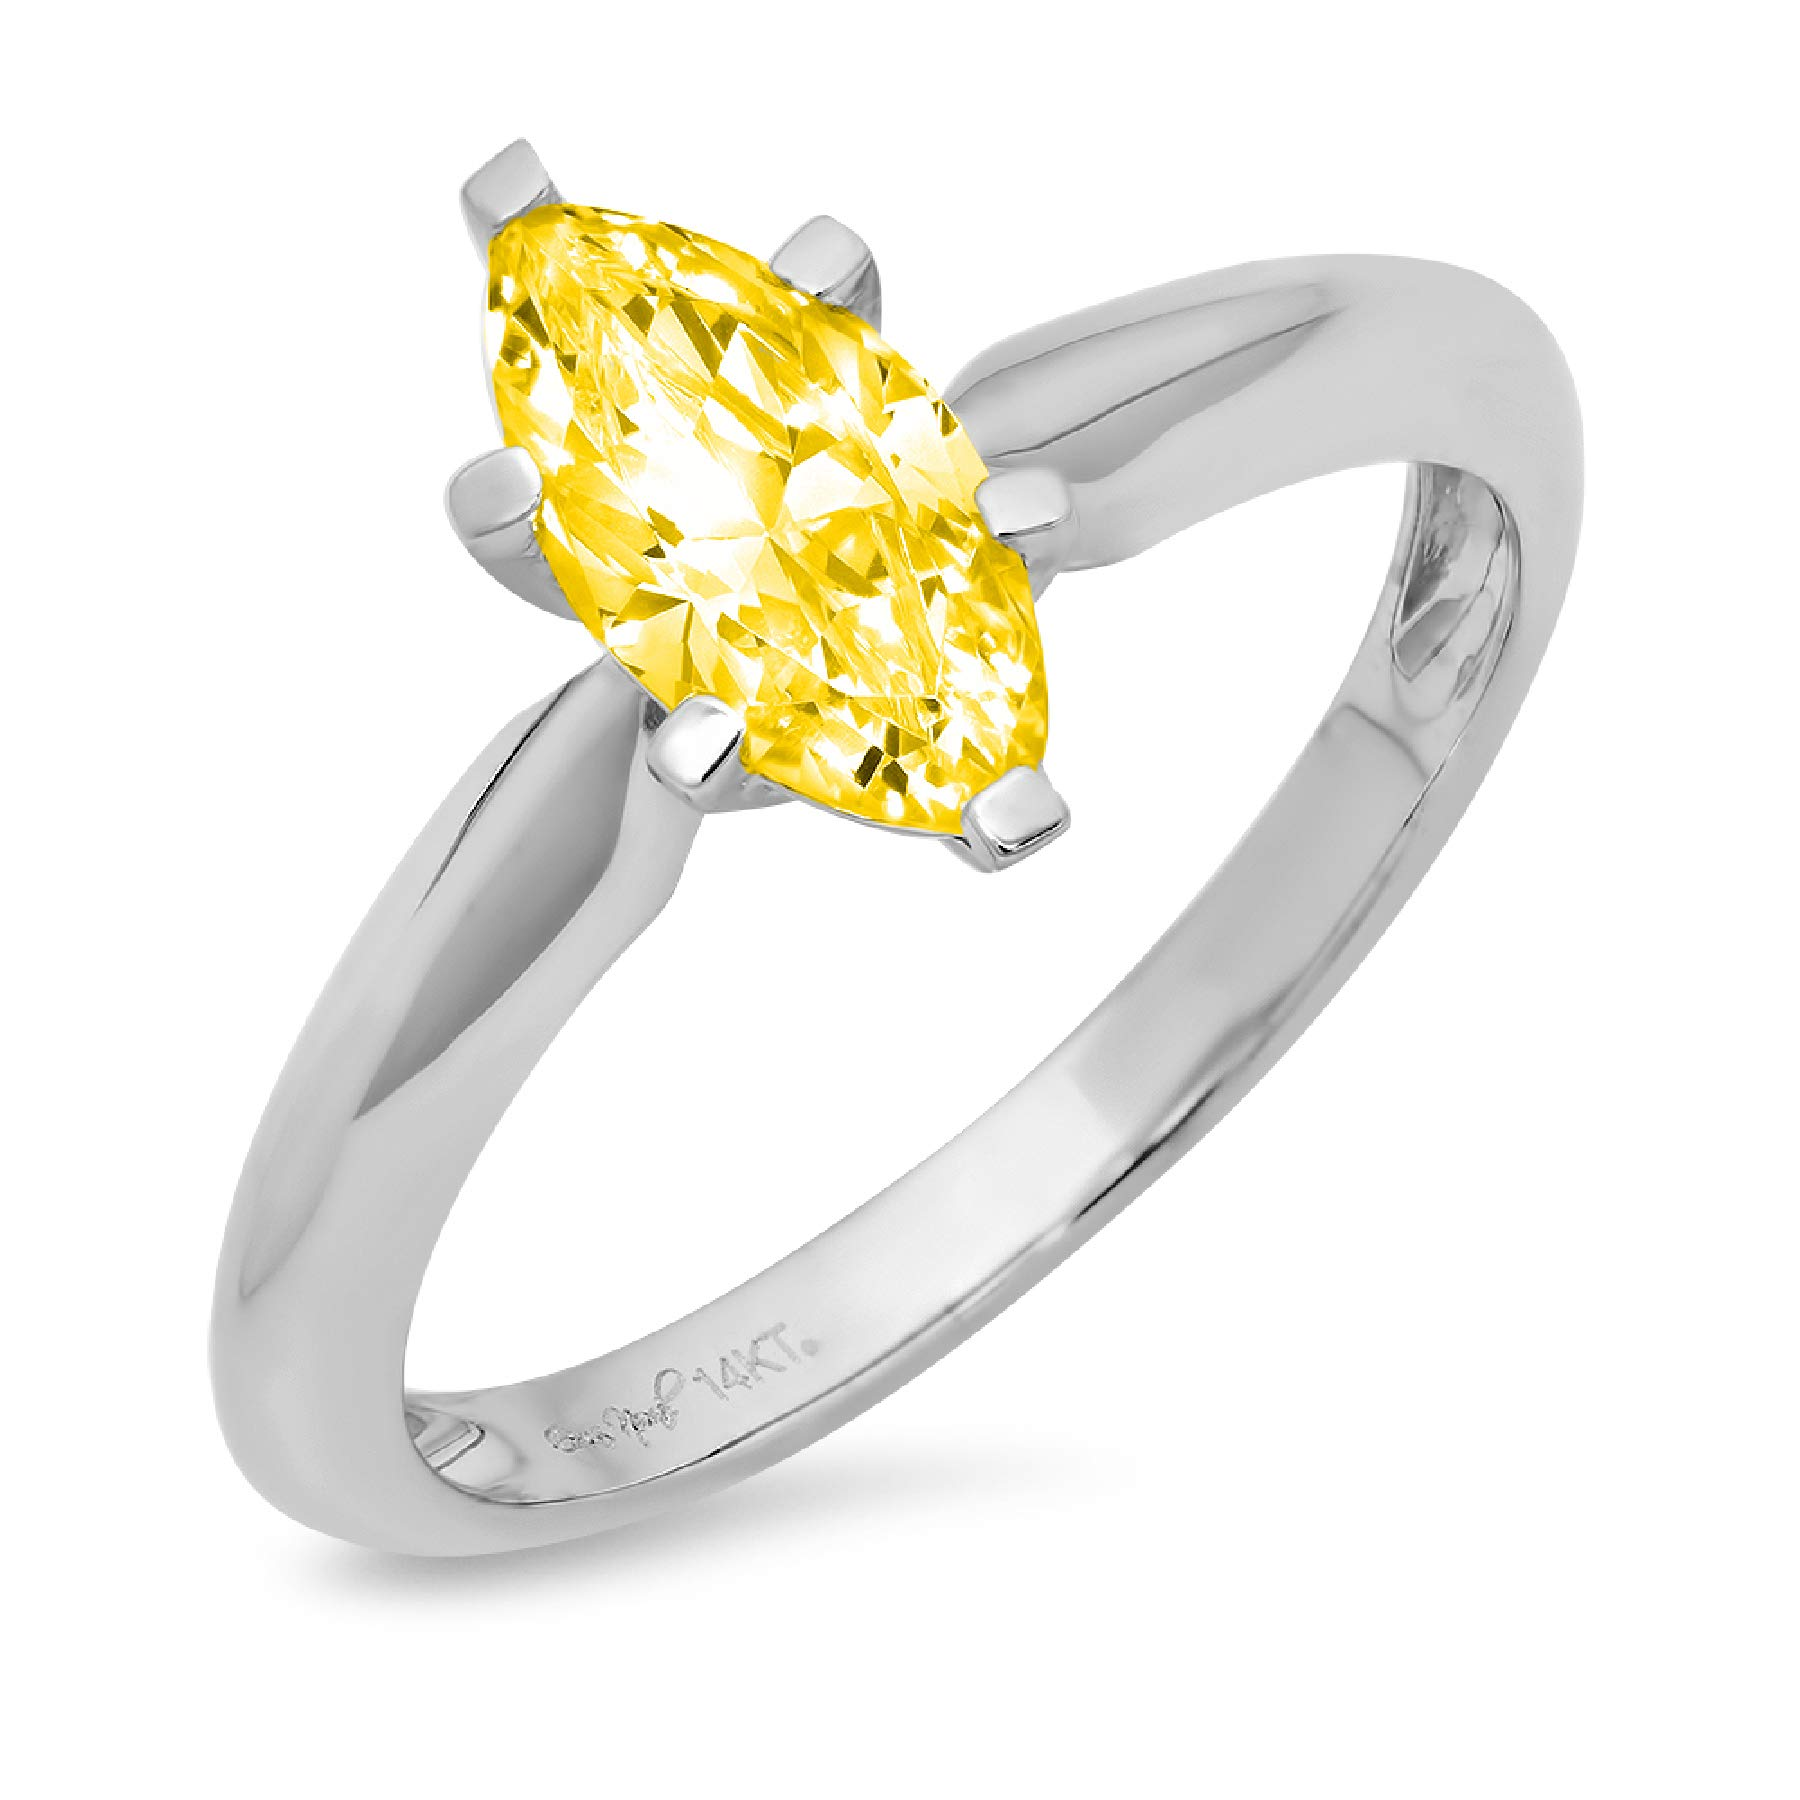 0.95ct Brilliant Marquise Cut Solitaire Canary Yellow Simulated Diamond CZ Ideal VVS1 D 6-Prong Classic Designer Statement Ring Solid Real 14k White Gold for Women